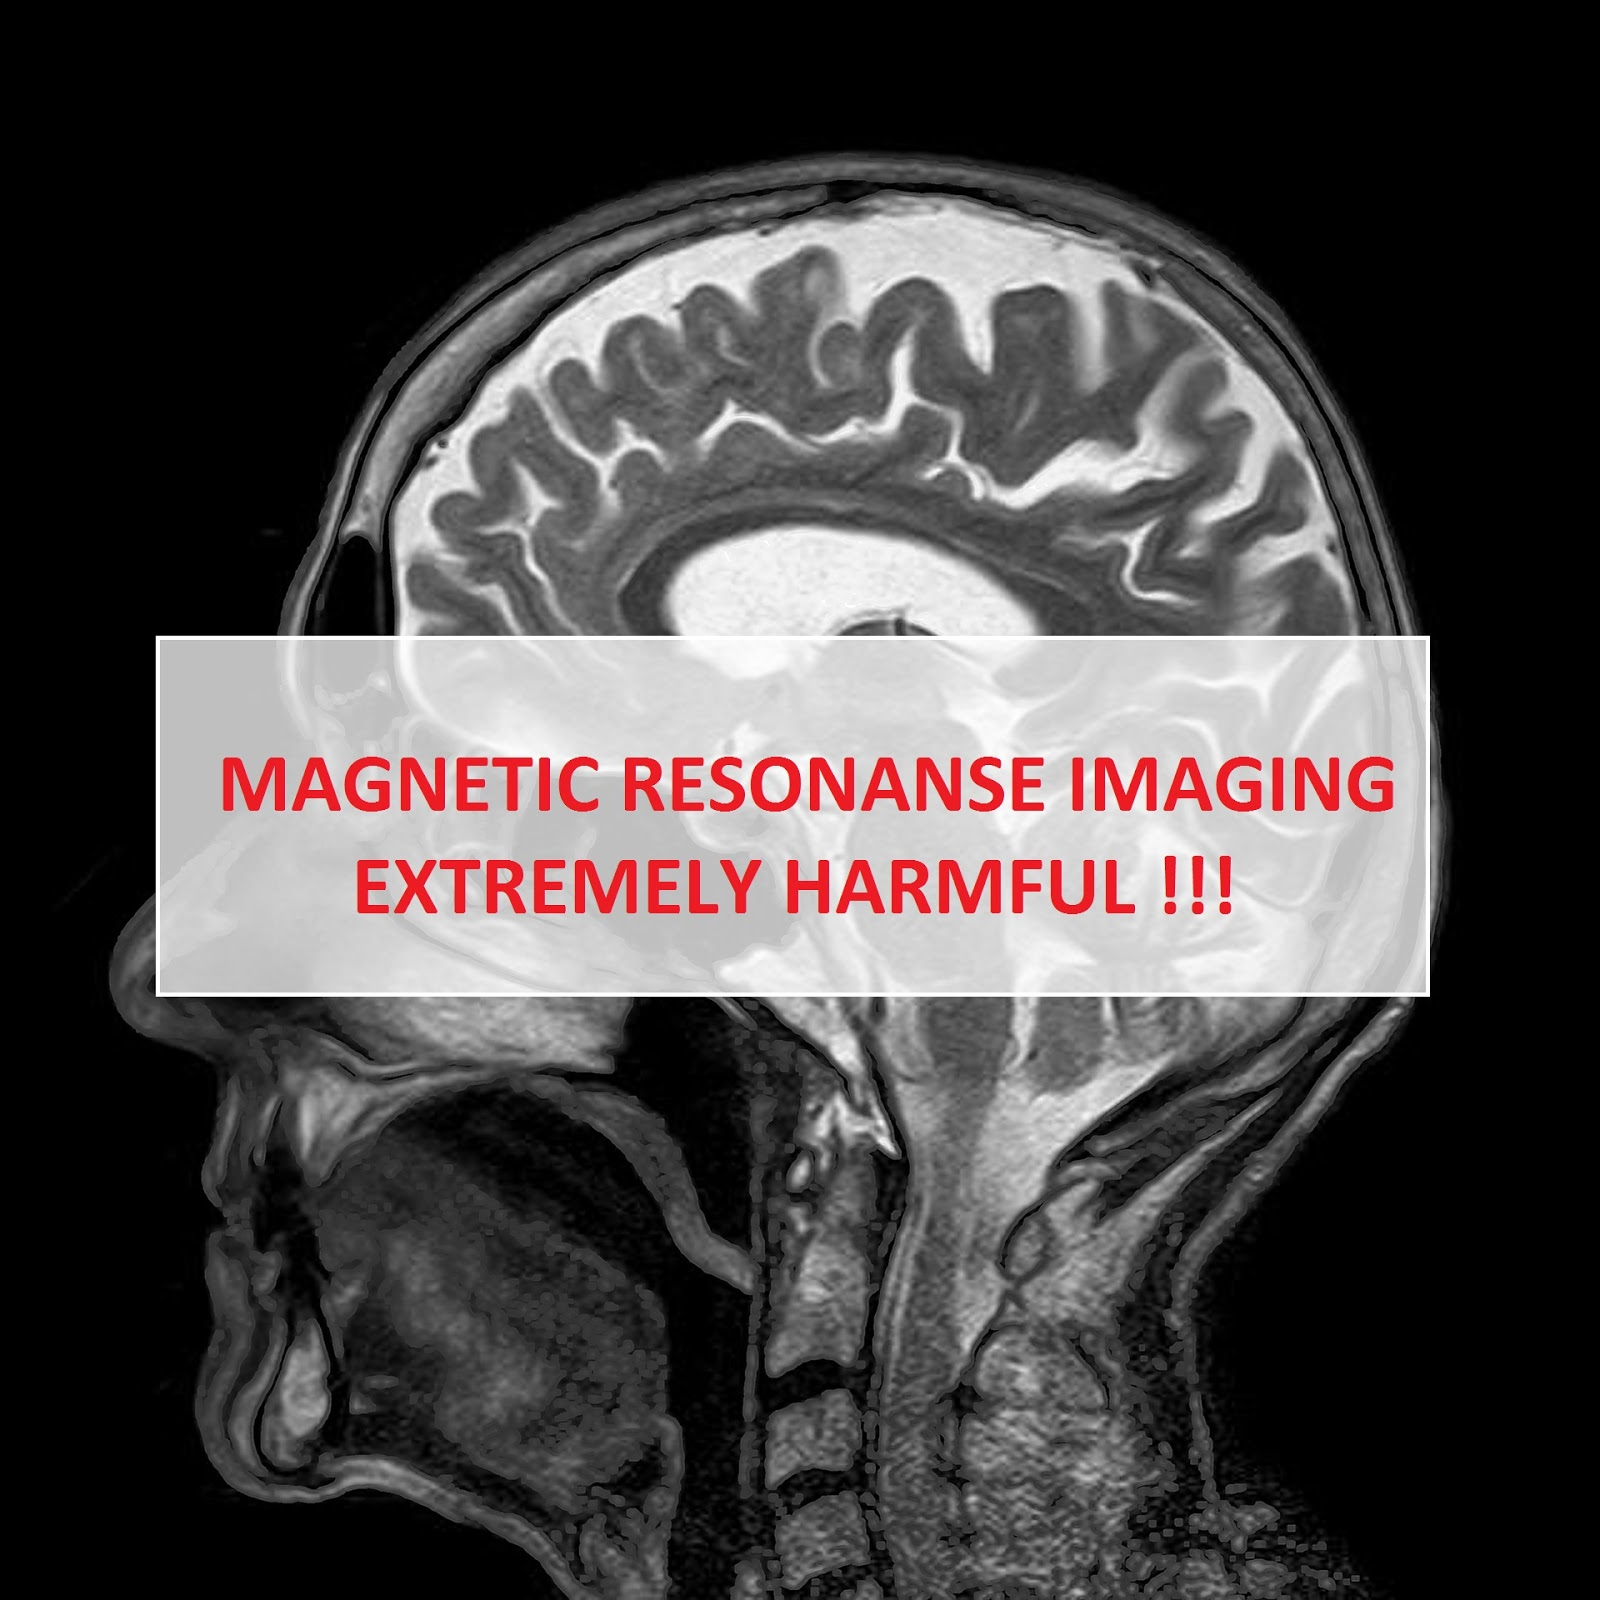 MRI (MAGNETIC RESONANCE IMAGING) – EXTREMELY HARMFUL